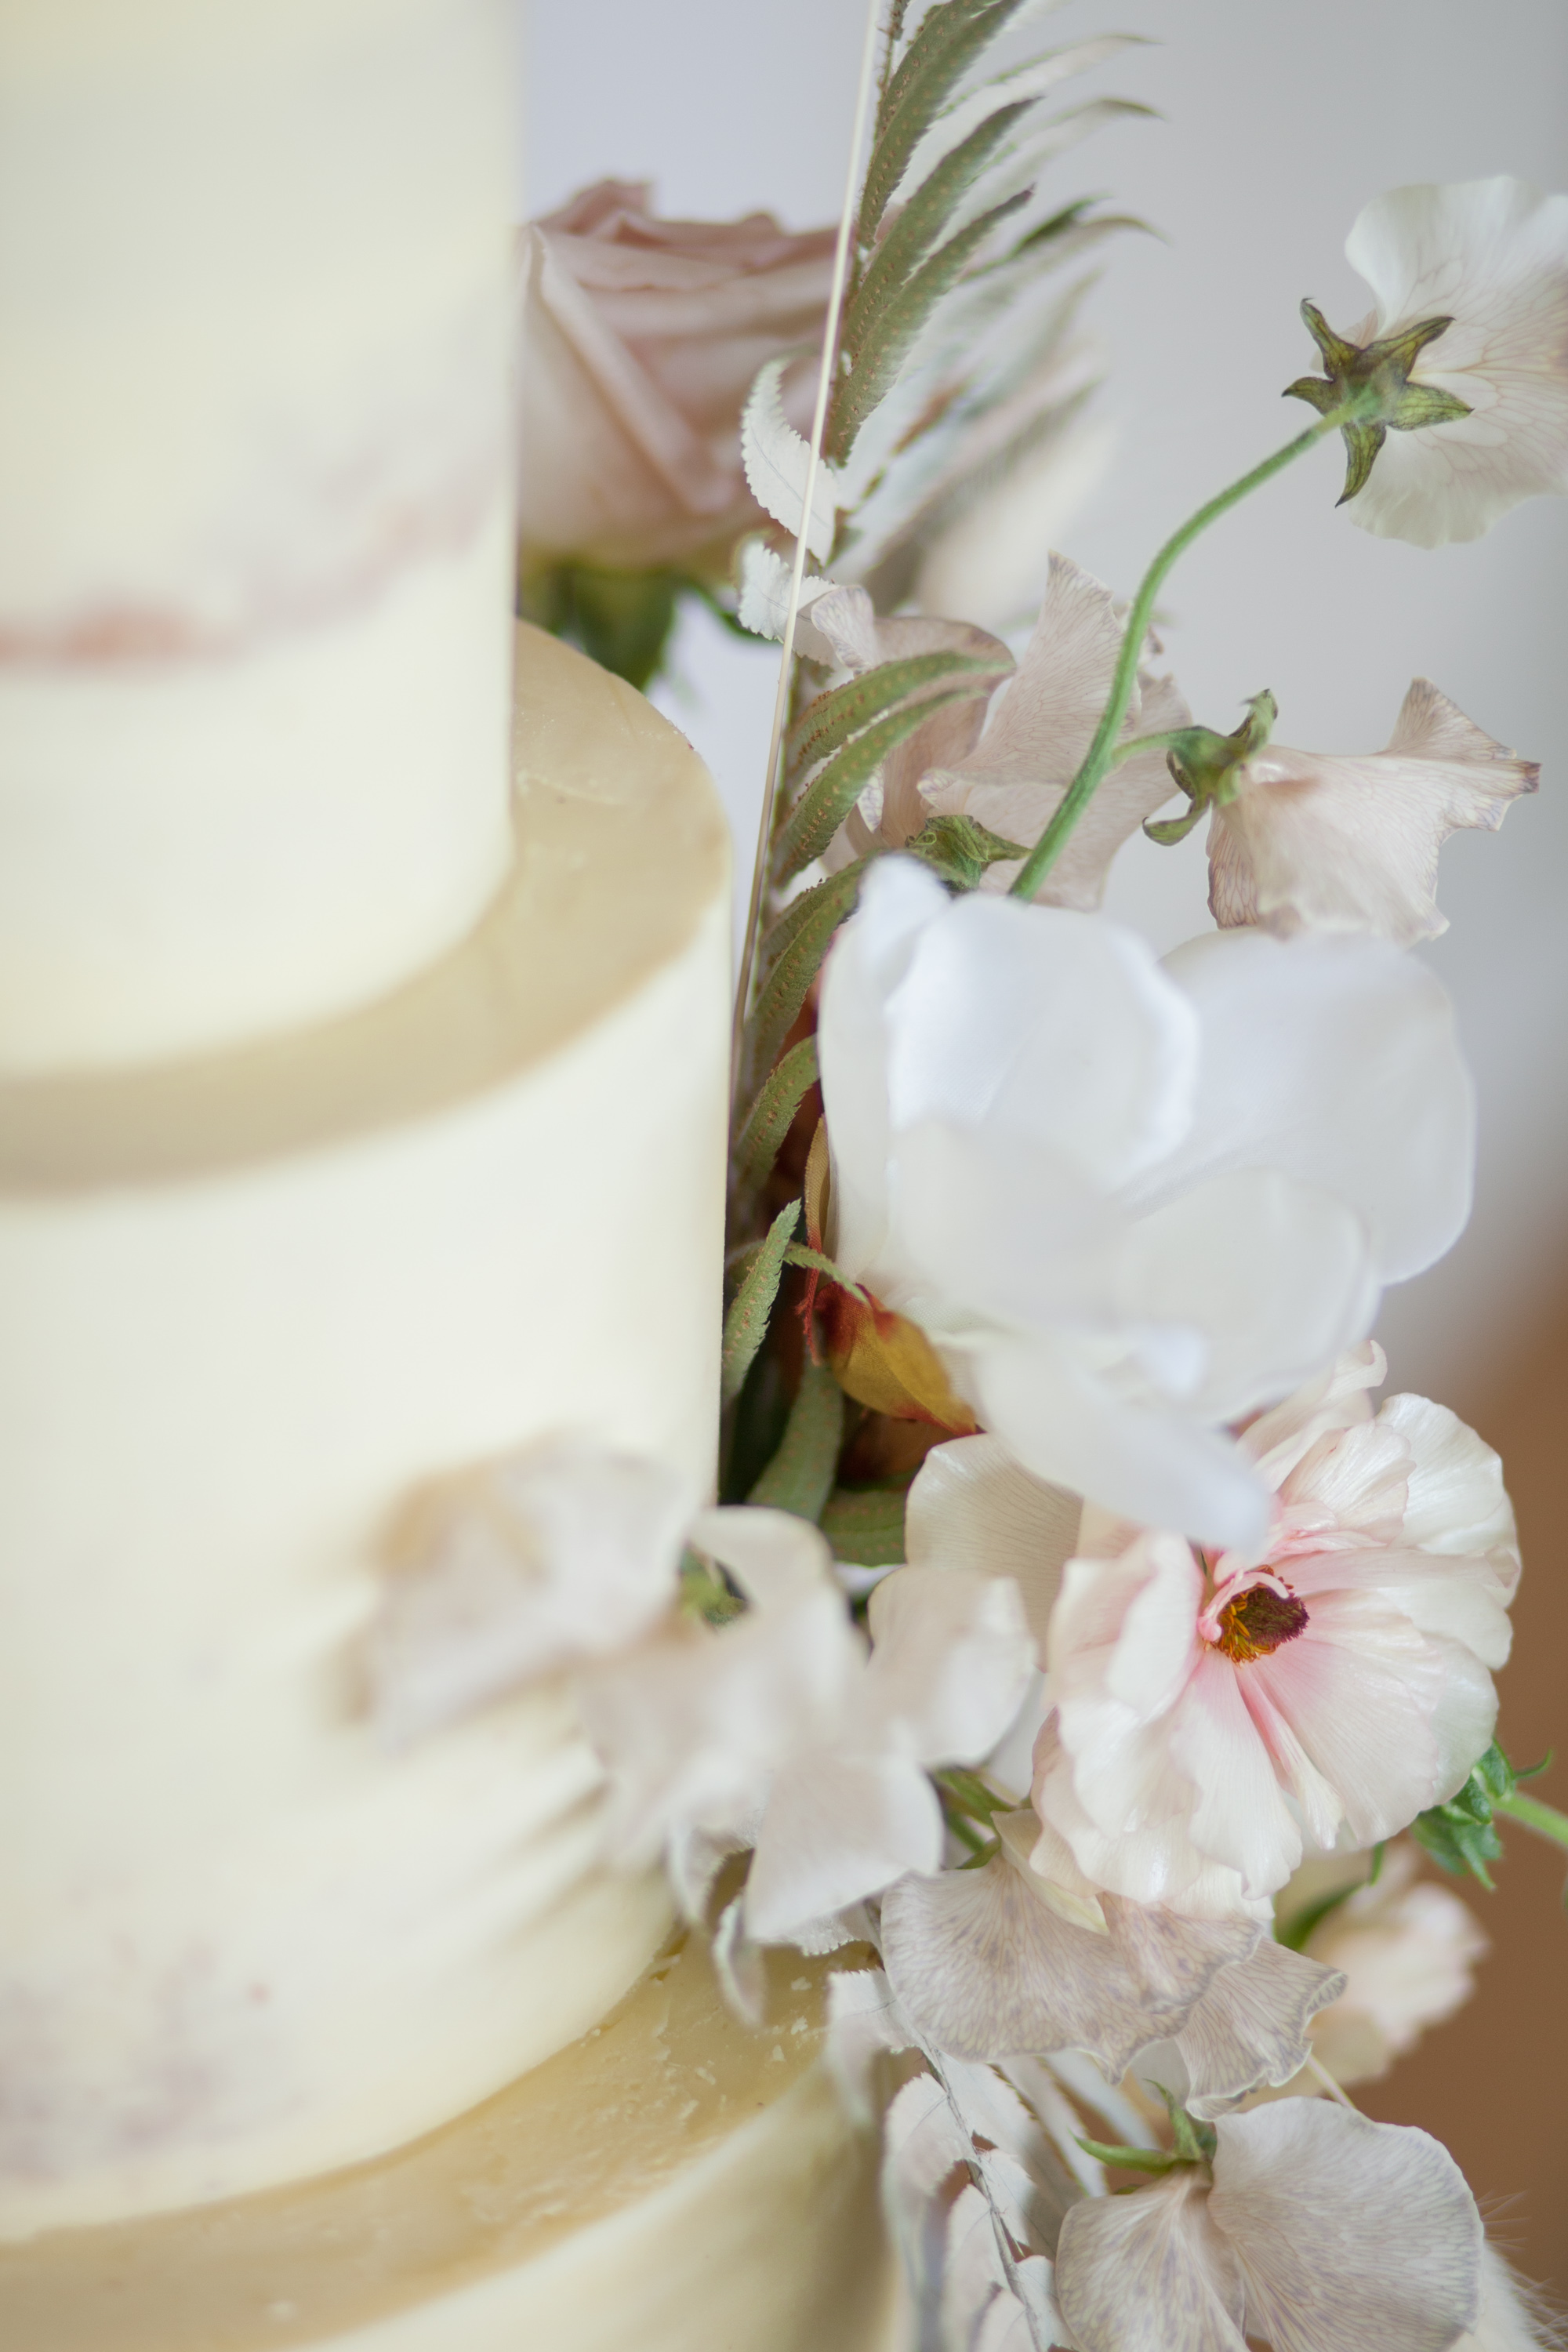 Sleek, sharp edges and floral details on this buttercream wedding cake